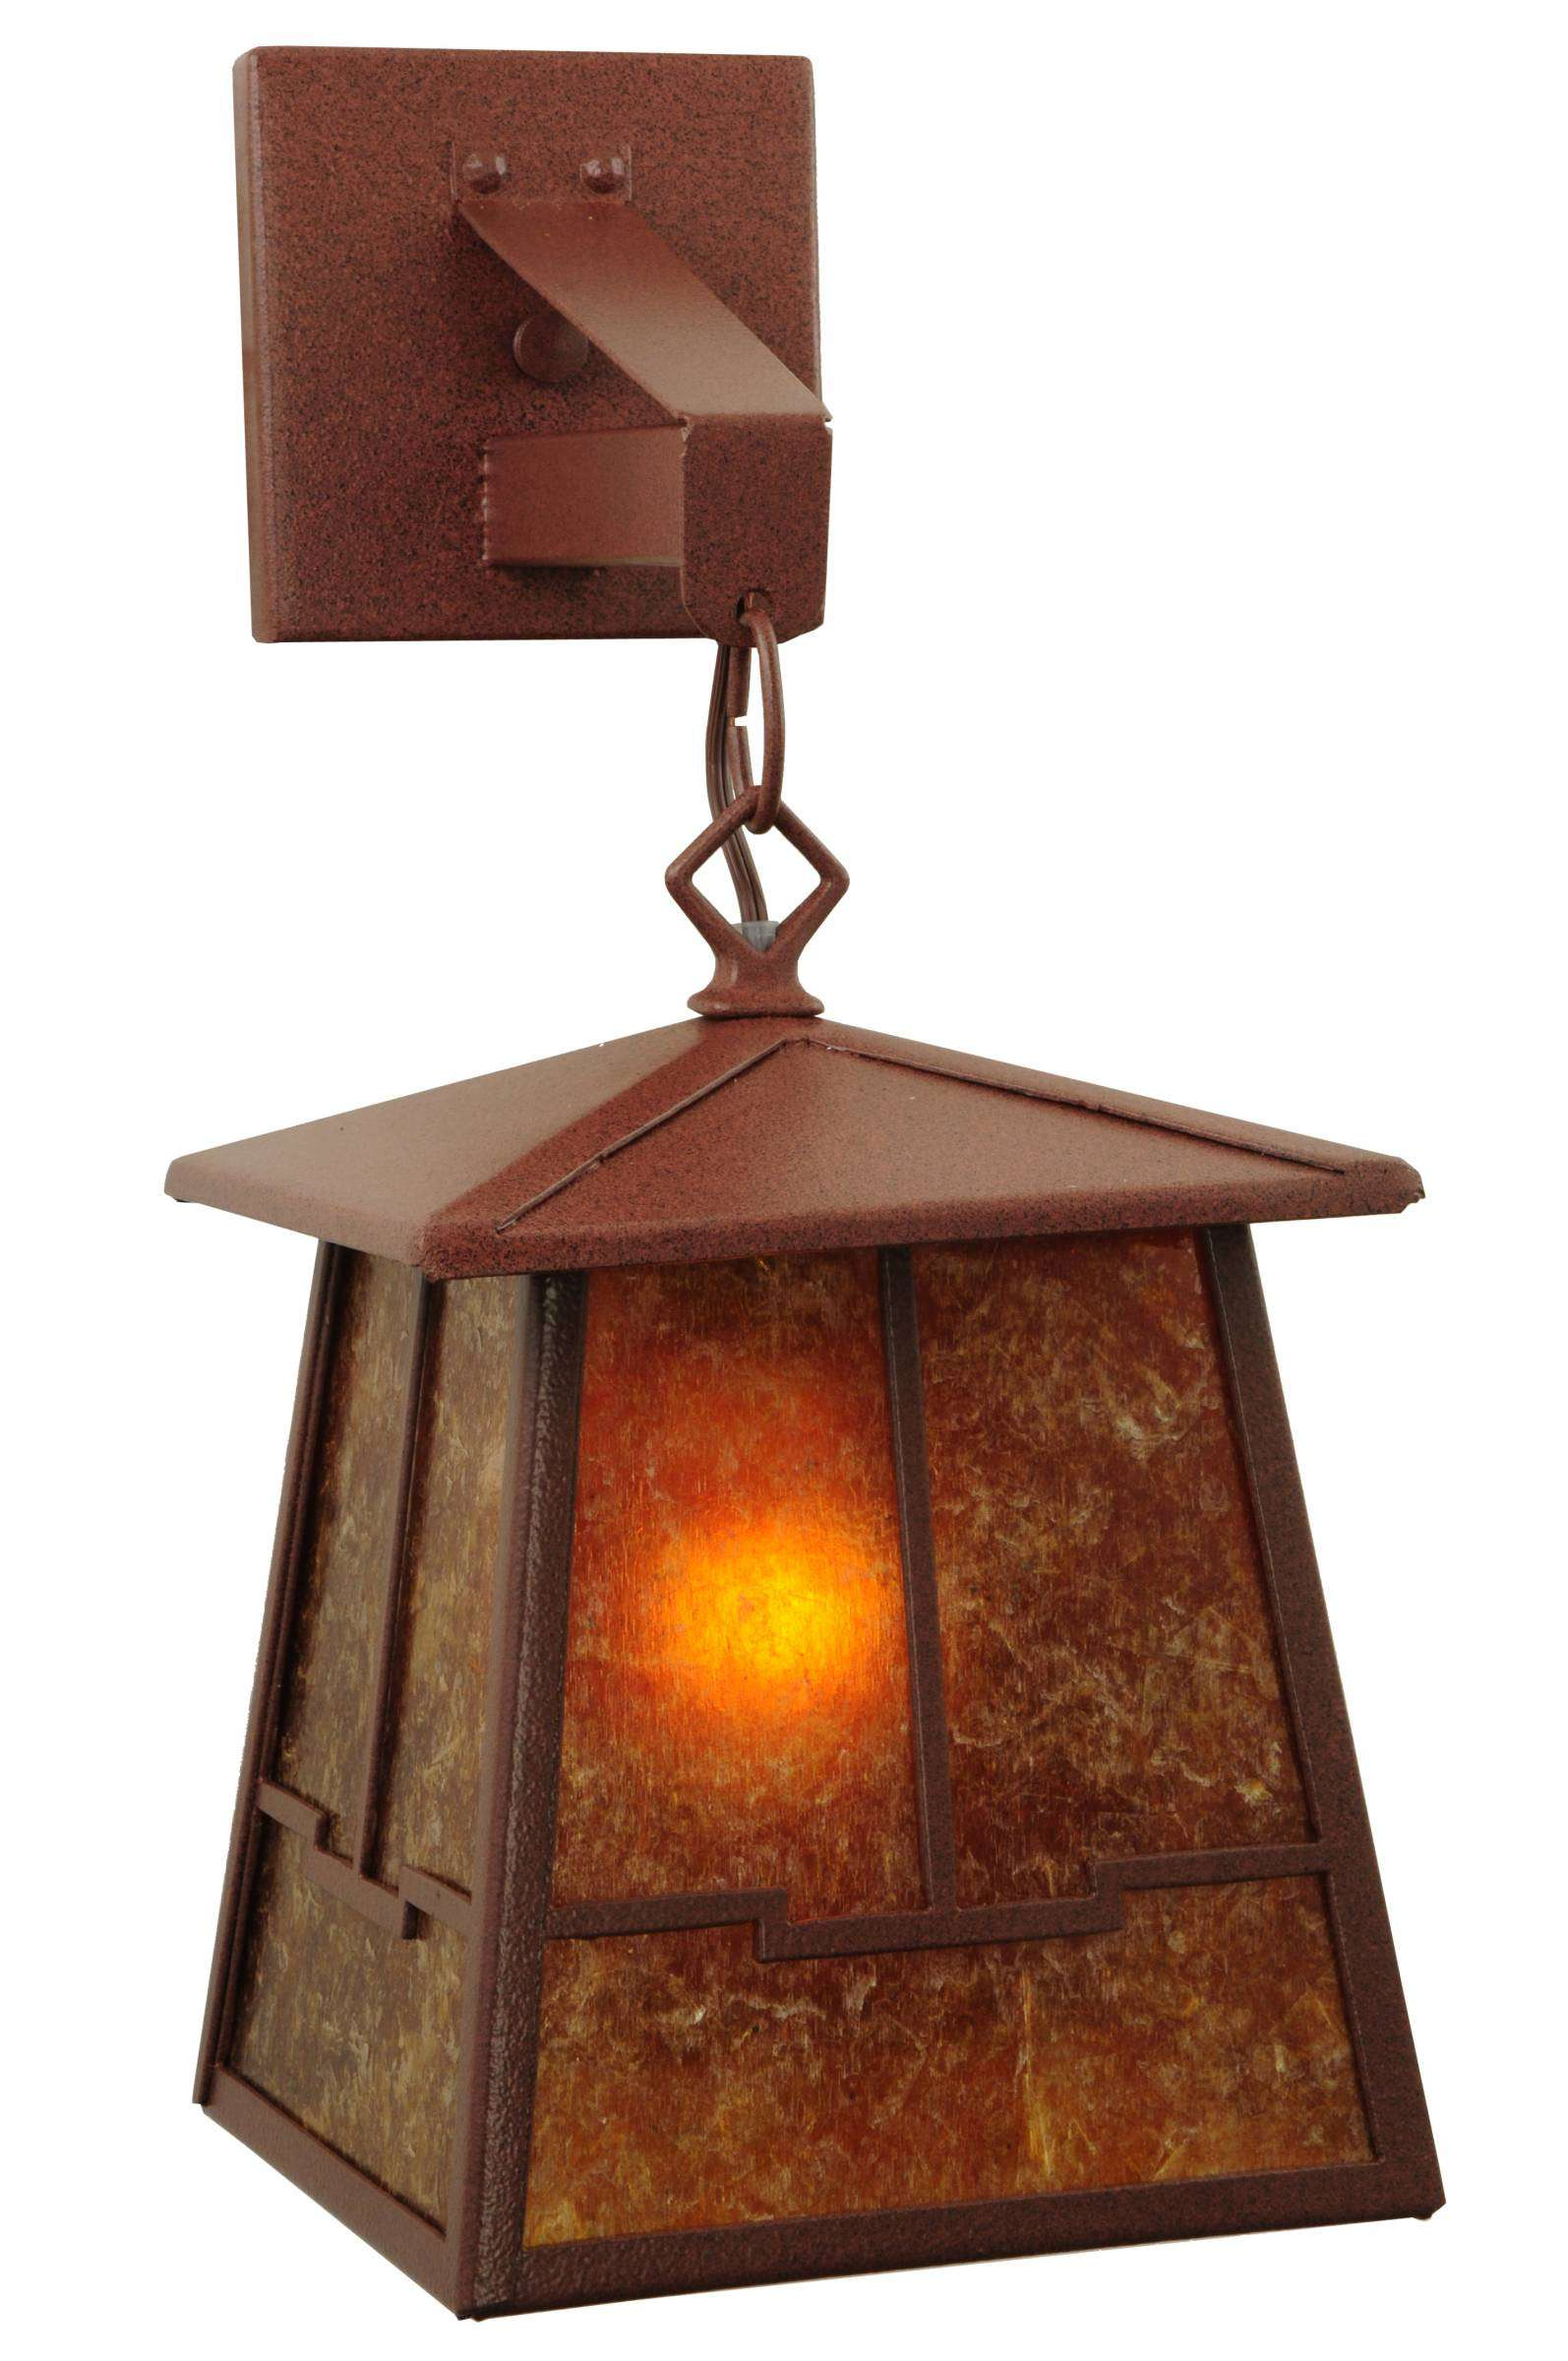 Meyda Tiffany 47748 Bungalow Valley View Hanging Wall Sconce in Rust finish with Amber Mica